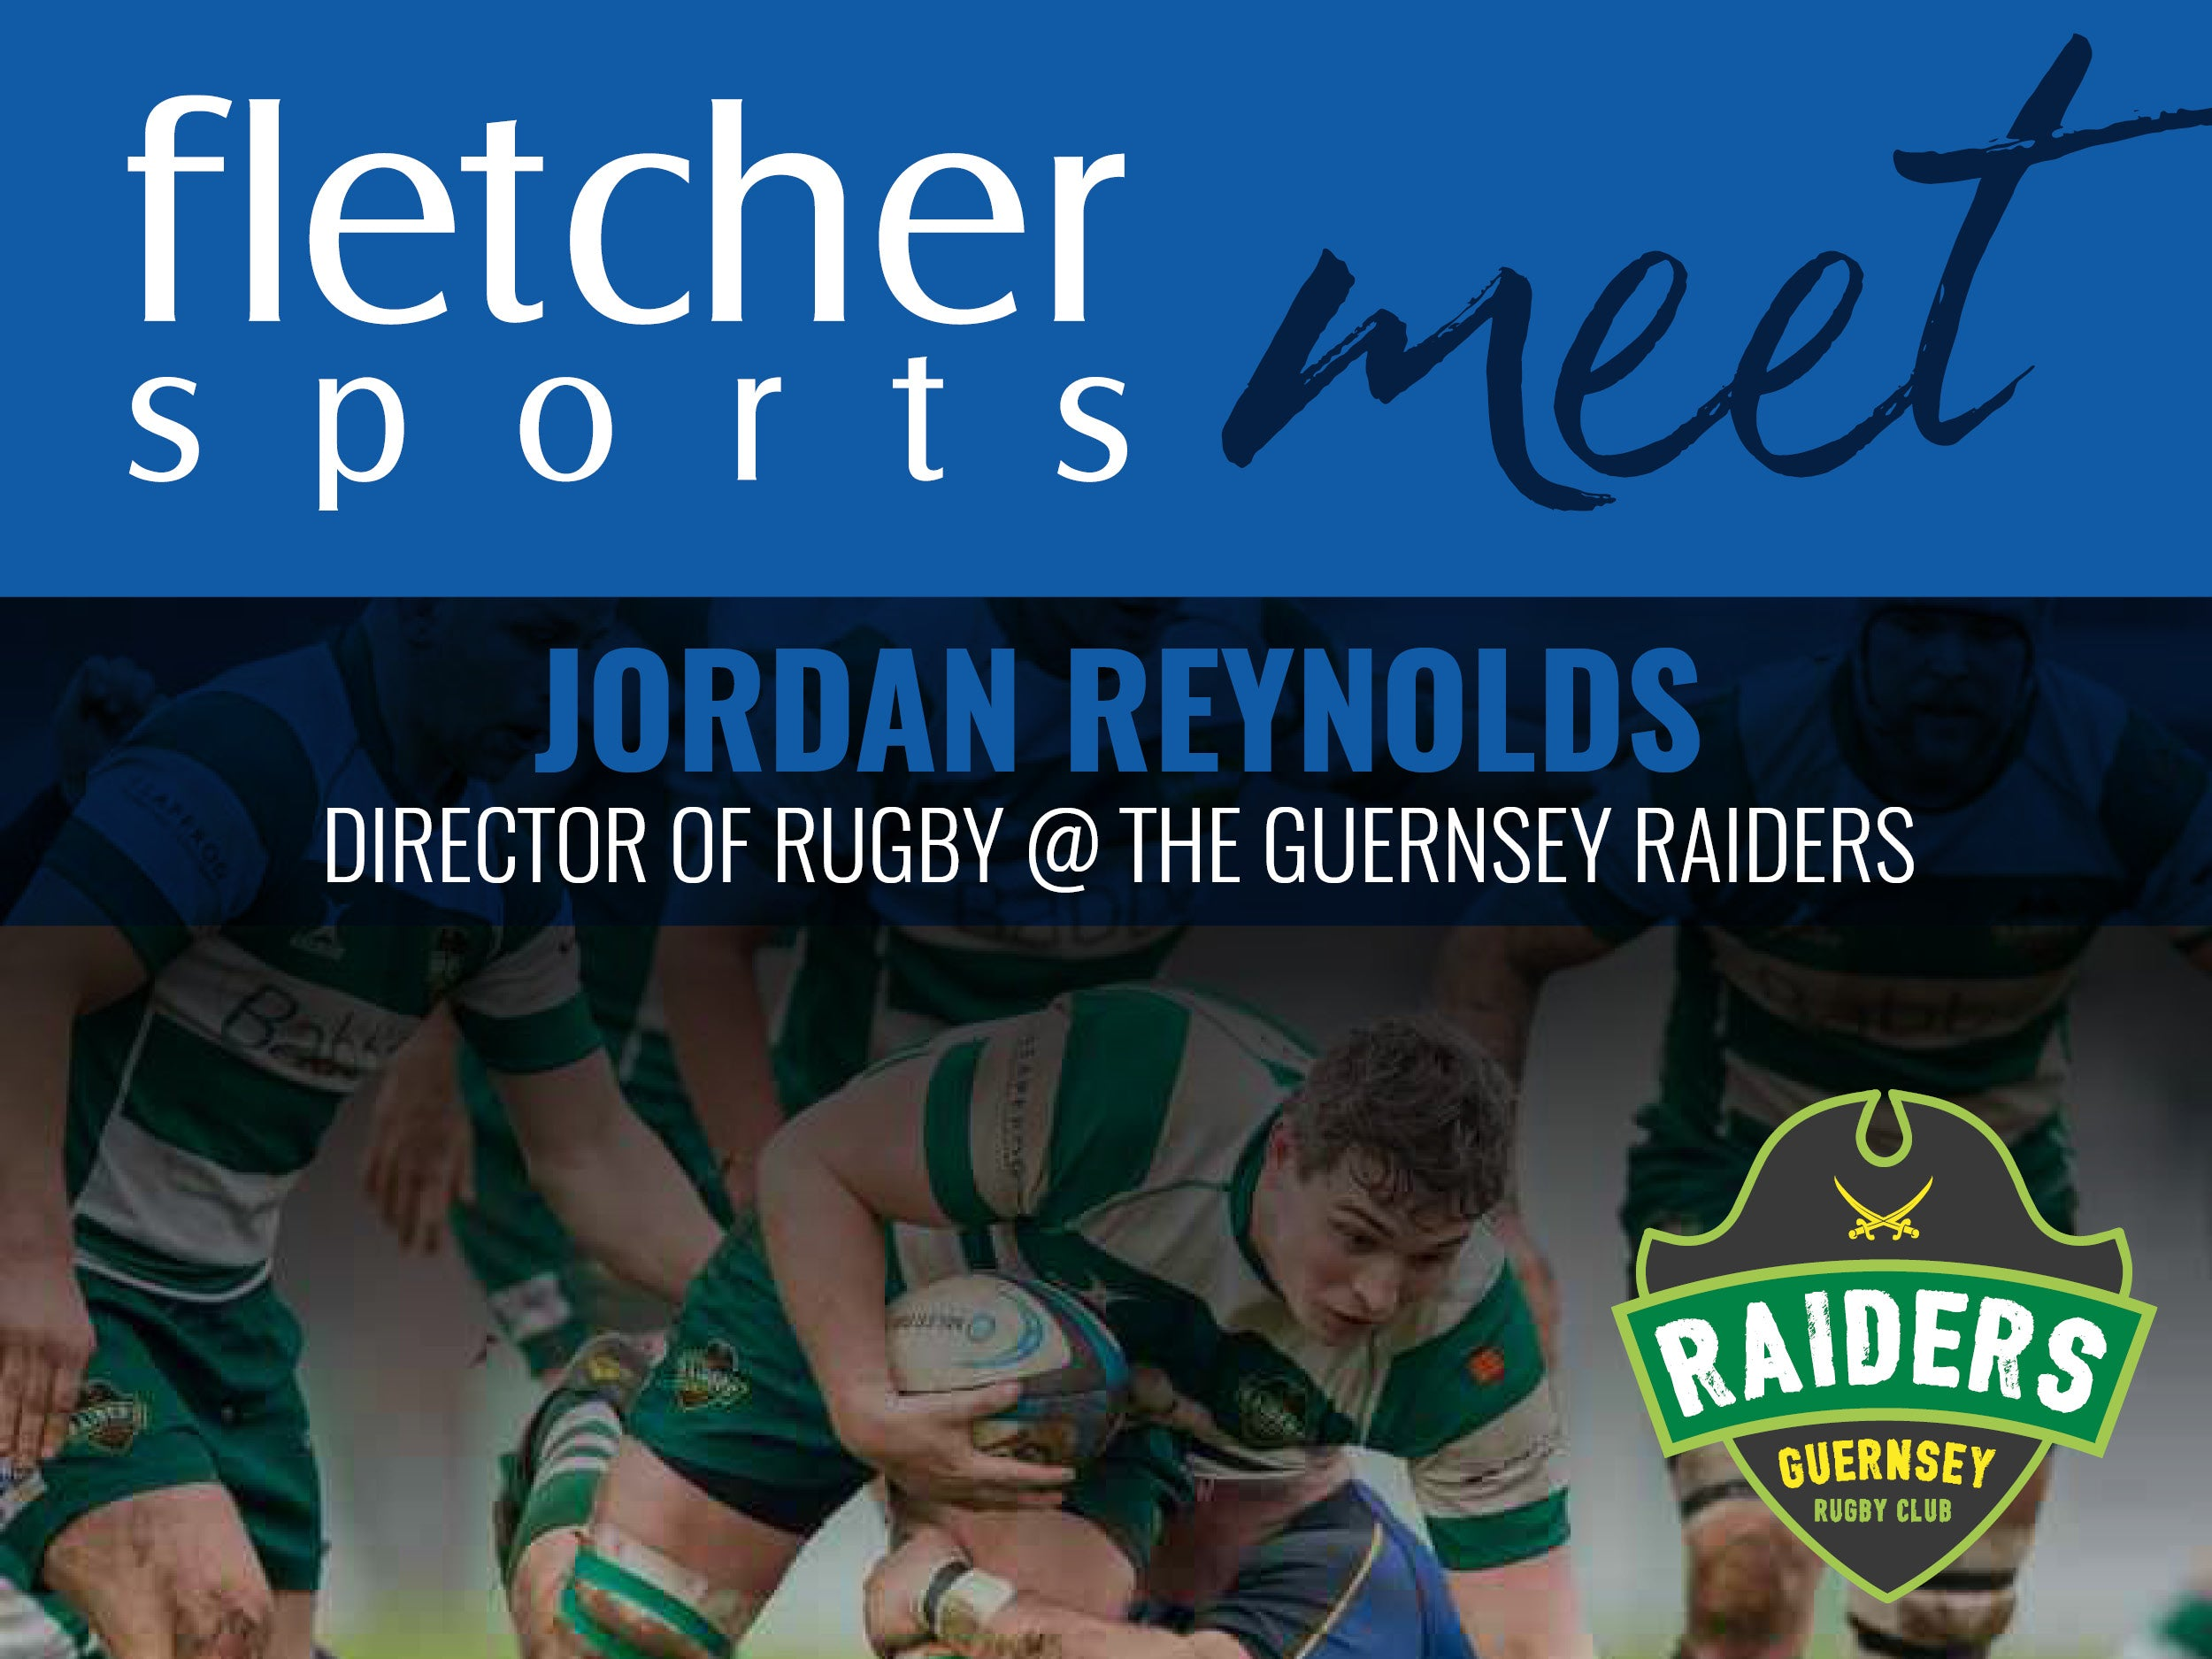 Fletcher Sports meets Jordan Reynolds, Guernsey Raiders Head of Rugby